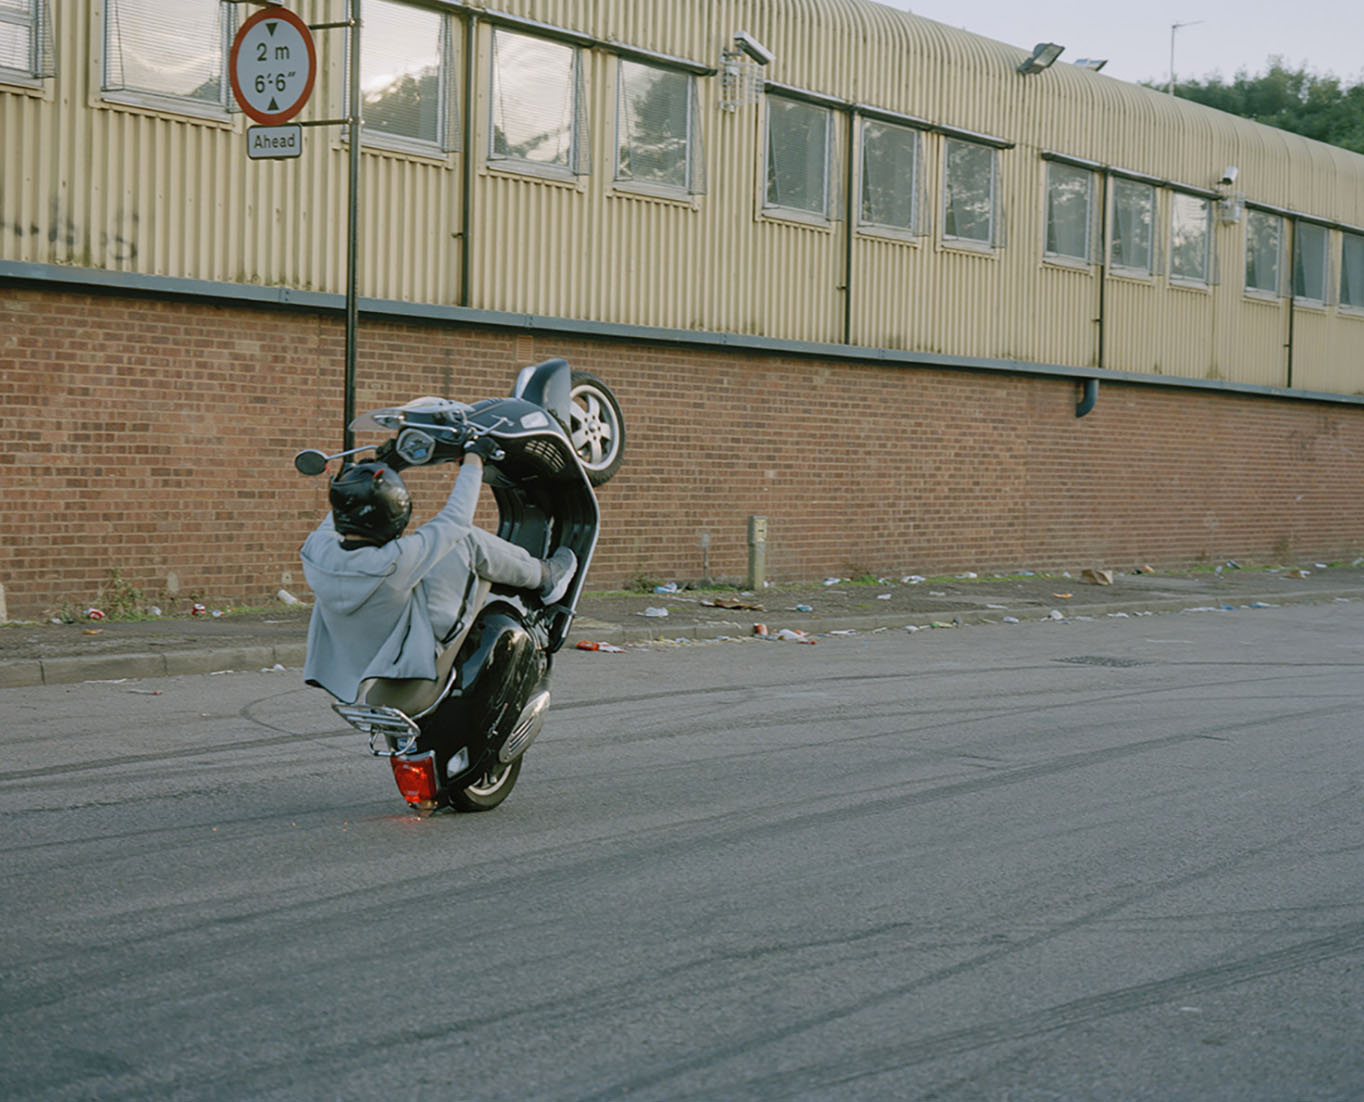 Motorcycle Outlaws Depicted By Spencer Murphy